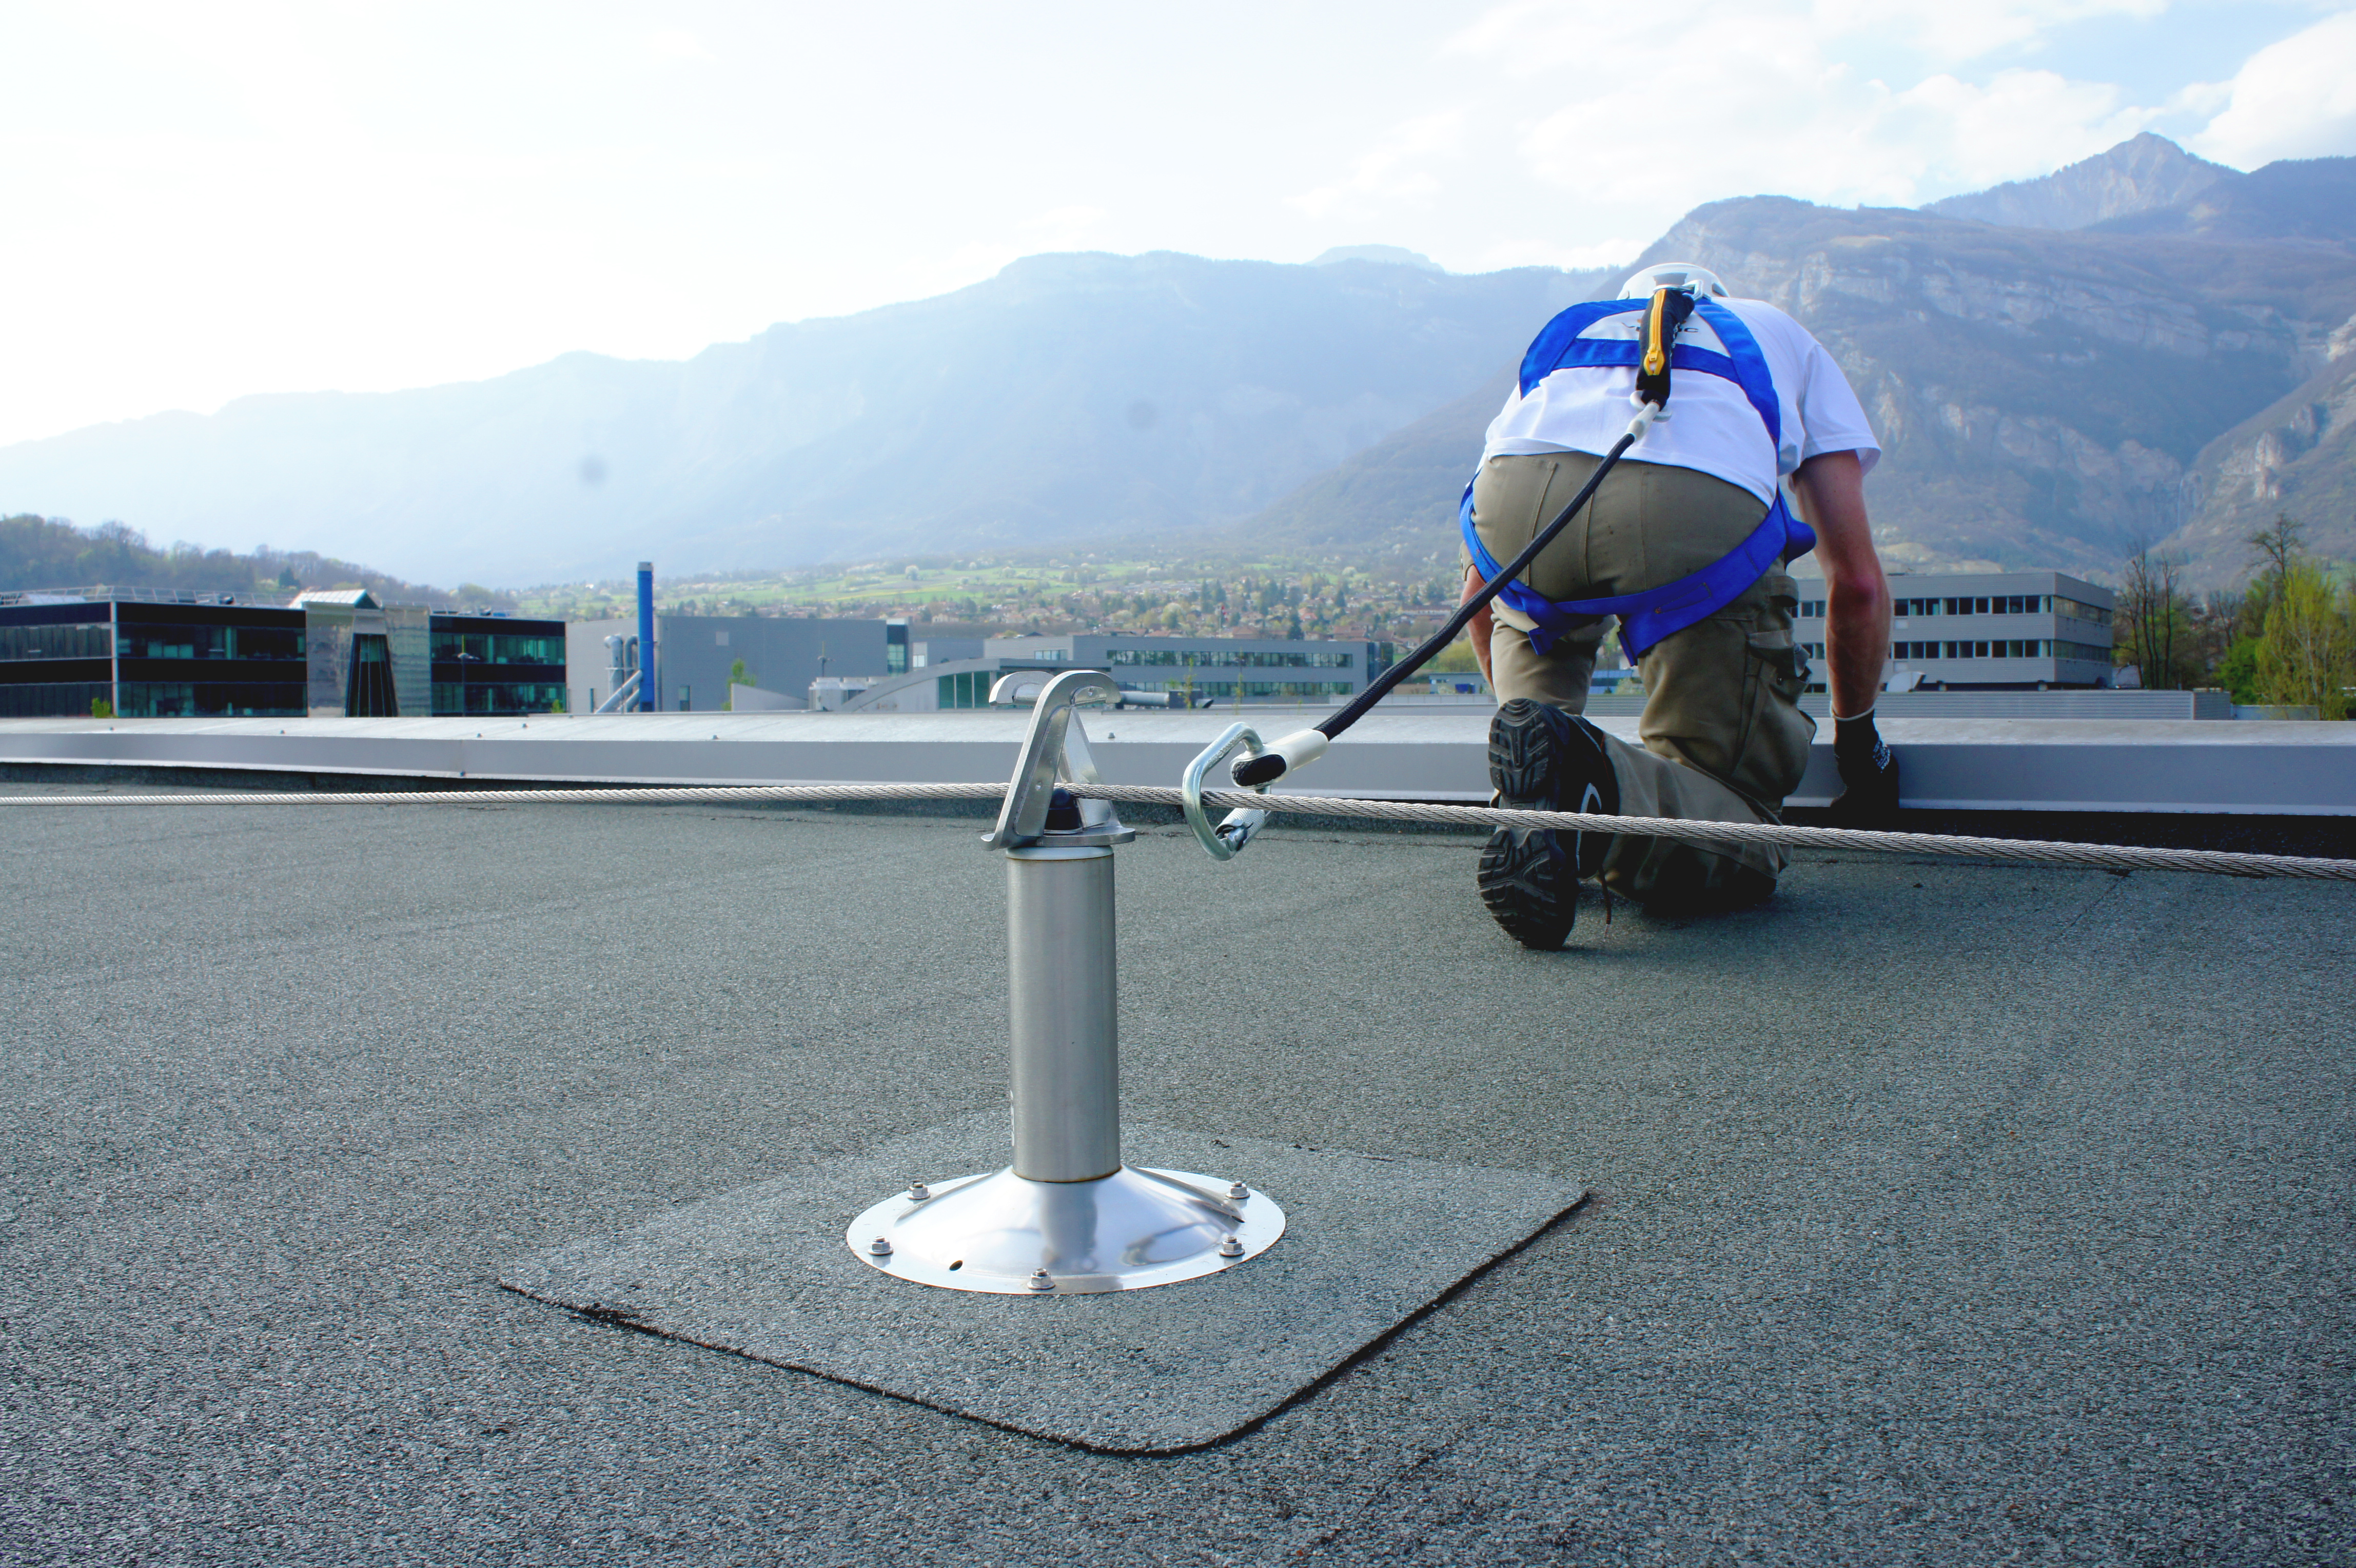 Horizontal fall protection systems - Products for safety at height ...